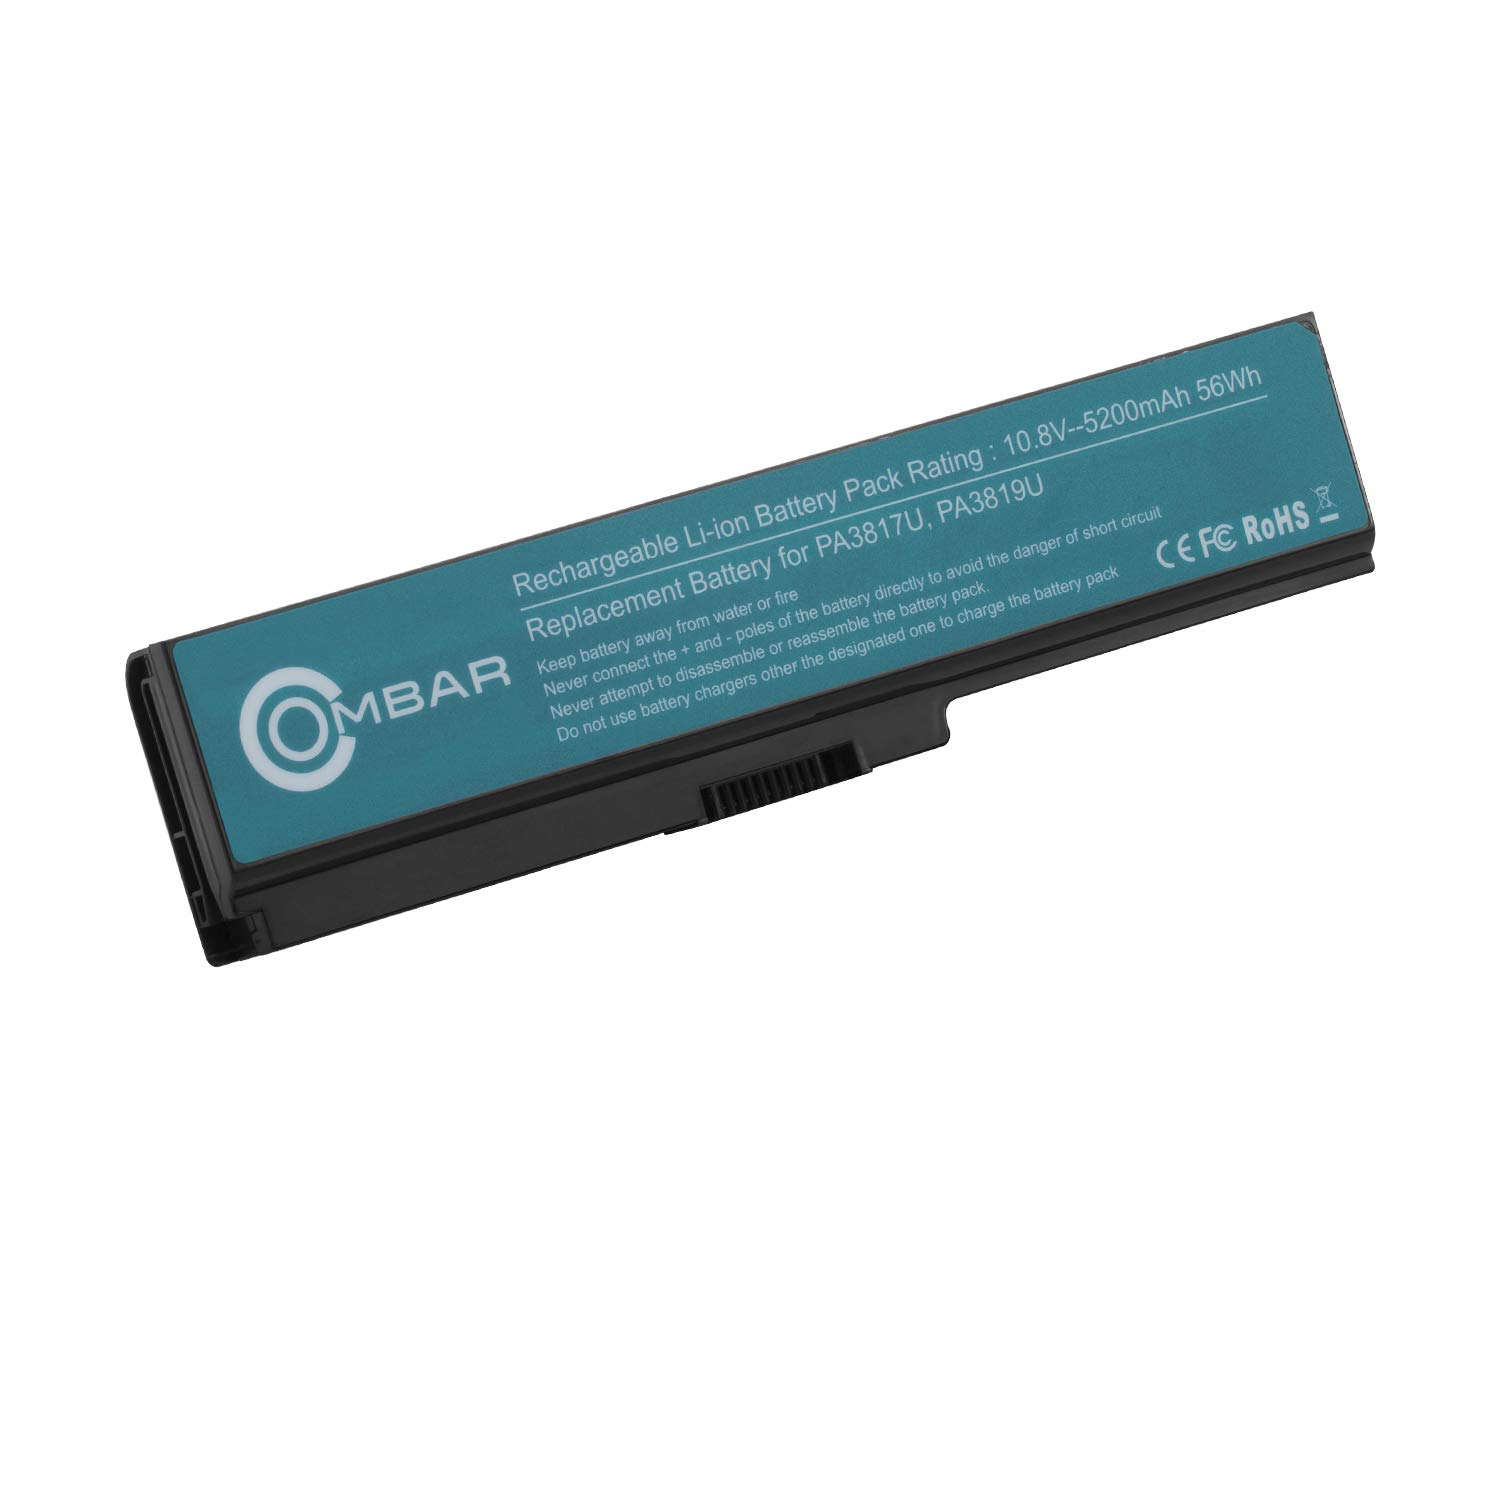 OMBAR PA3817U-1BRS Laptop Battery Replacement for Toshiba PA3817U-1BRS  PA3817U-1BAS PA3818U-1BRS PA3819U-1BRS Toshiba Satellite C655 L600 L675  L675D